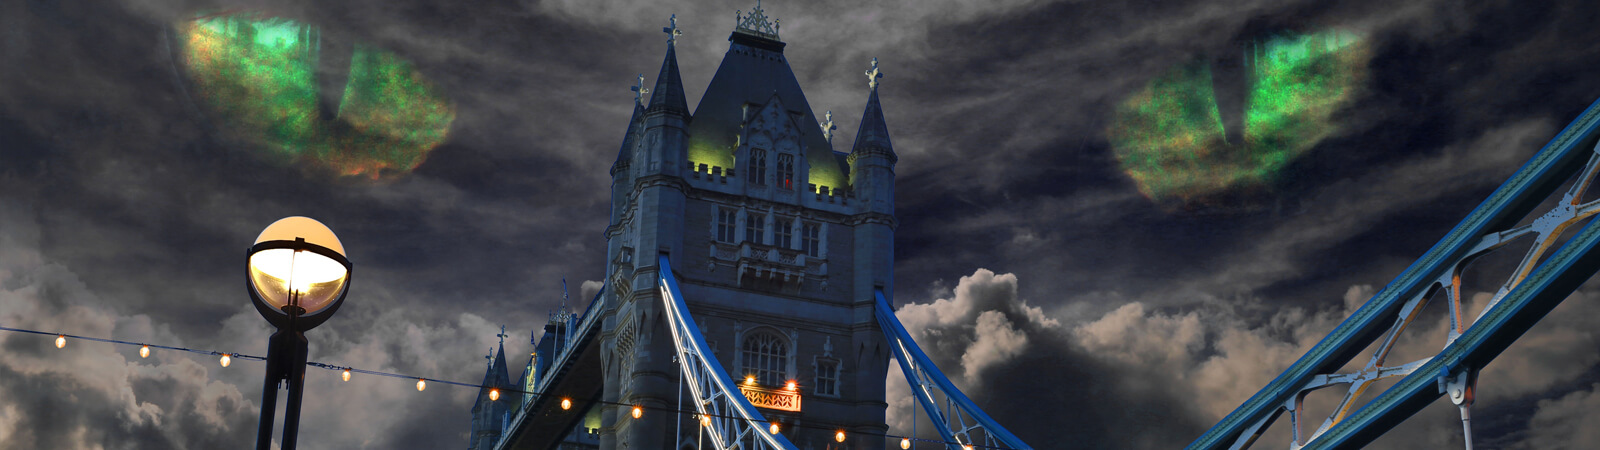 Top 10 Halloween In London Haunts